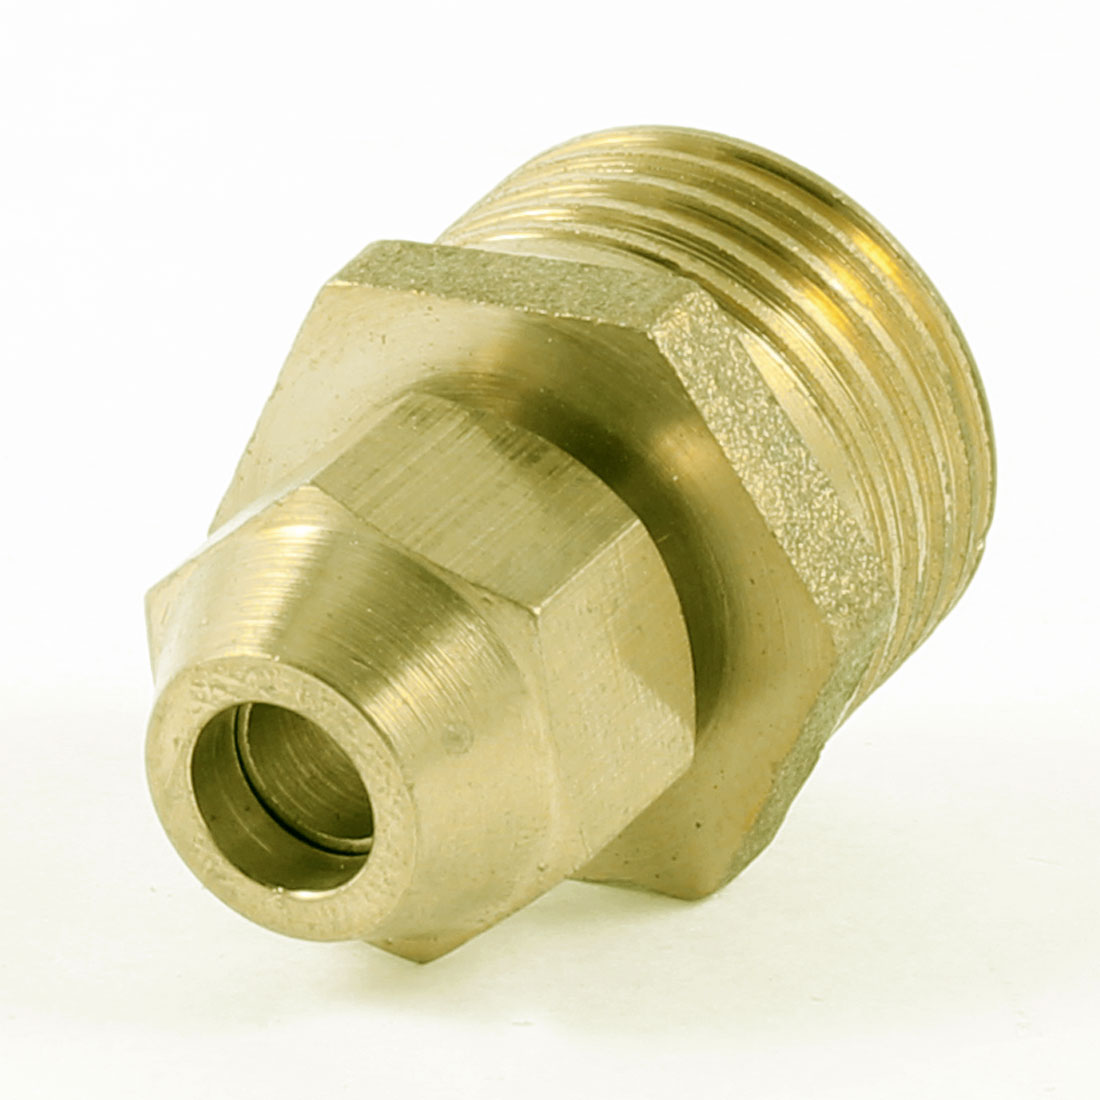 "1/2"" PT Male Threaded Hex Bushing Hydraulic Fitting Gold Tone for 6mm Tube Pipe"